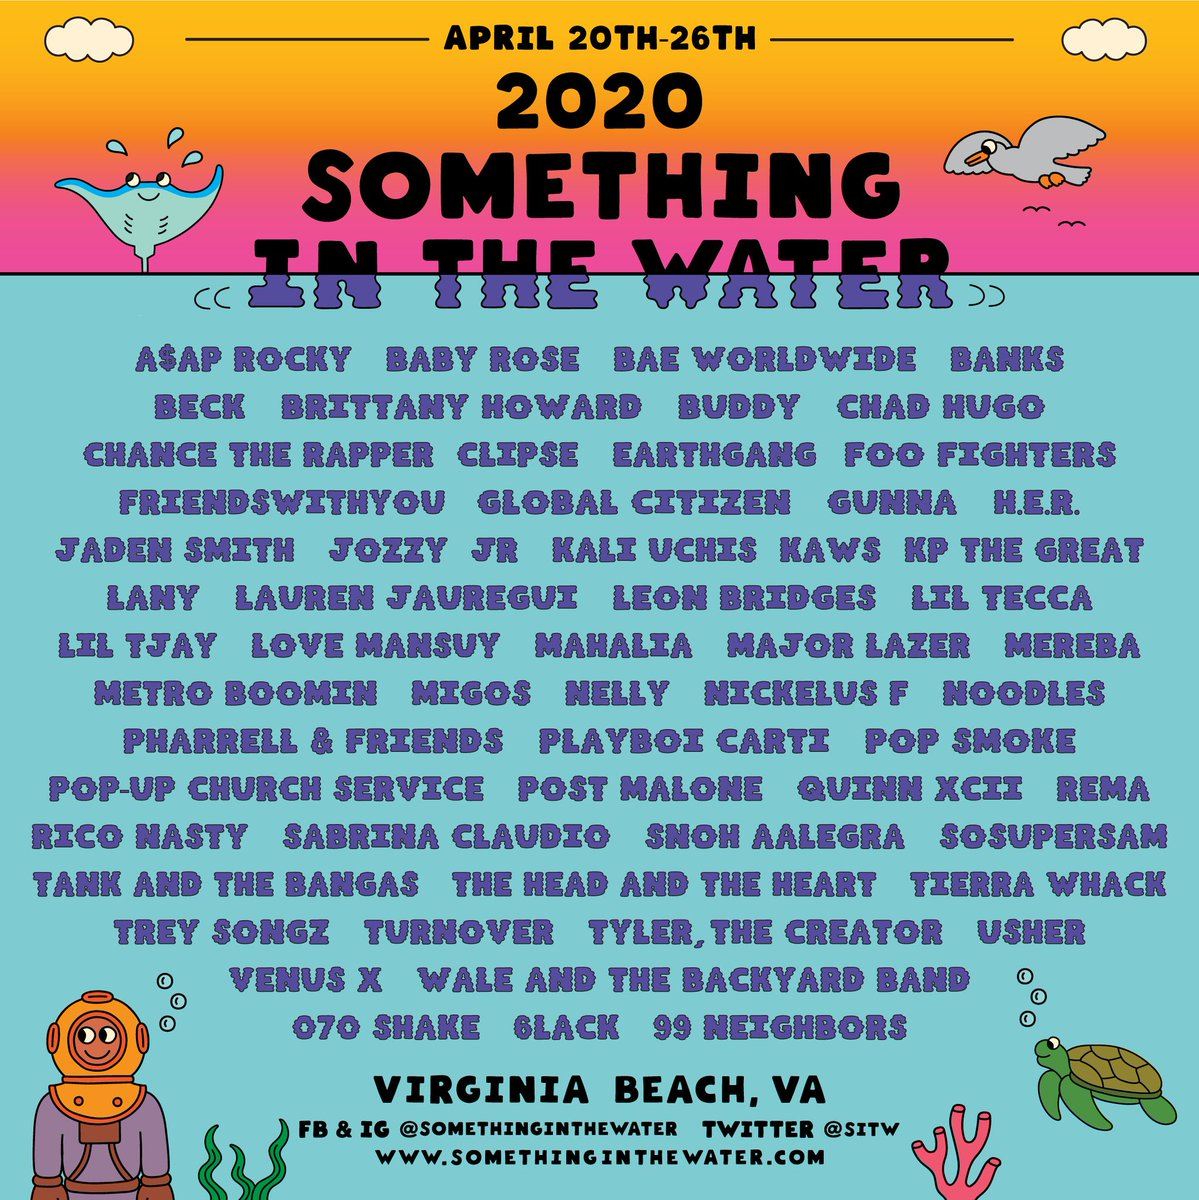 The SITW lineup is HERE 🚨 👤 Migos 👤 Post Malone 👤 Tyler, The Creator 👤 Chance The Rapper 👤 ASAP Rocky 👤 Lil Tecca 👤 Playboy Carti 👤 Metro Boomin 👤 Pop Smoke ➕ MORE ⬇️